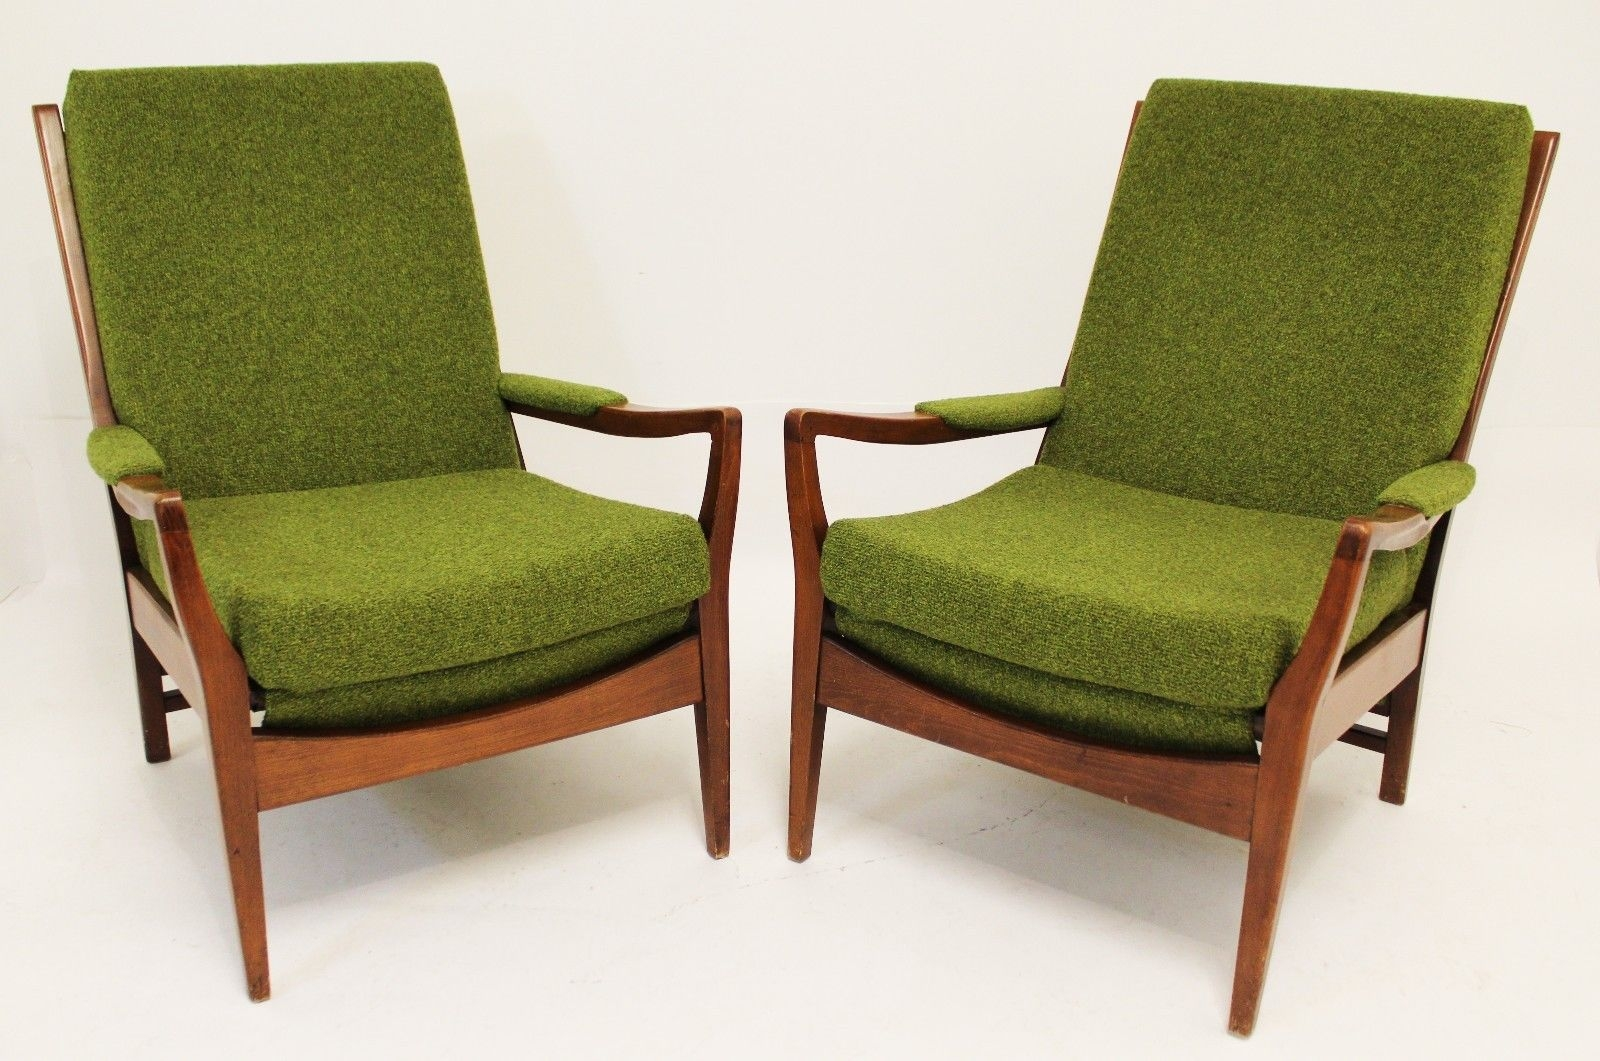 Impressive Popular Cintique Mid Century Armchairs Intended For Mid Century Modern Pair Of Cintique Walnut Chairs English Larsen (Image 9 of 15)